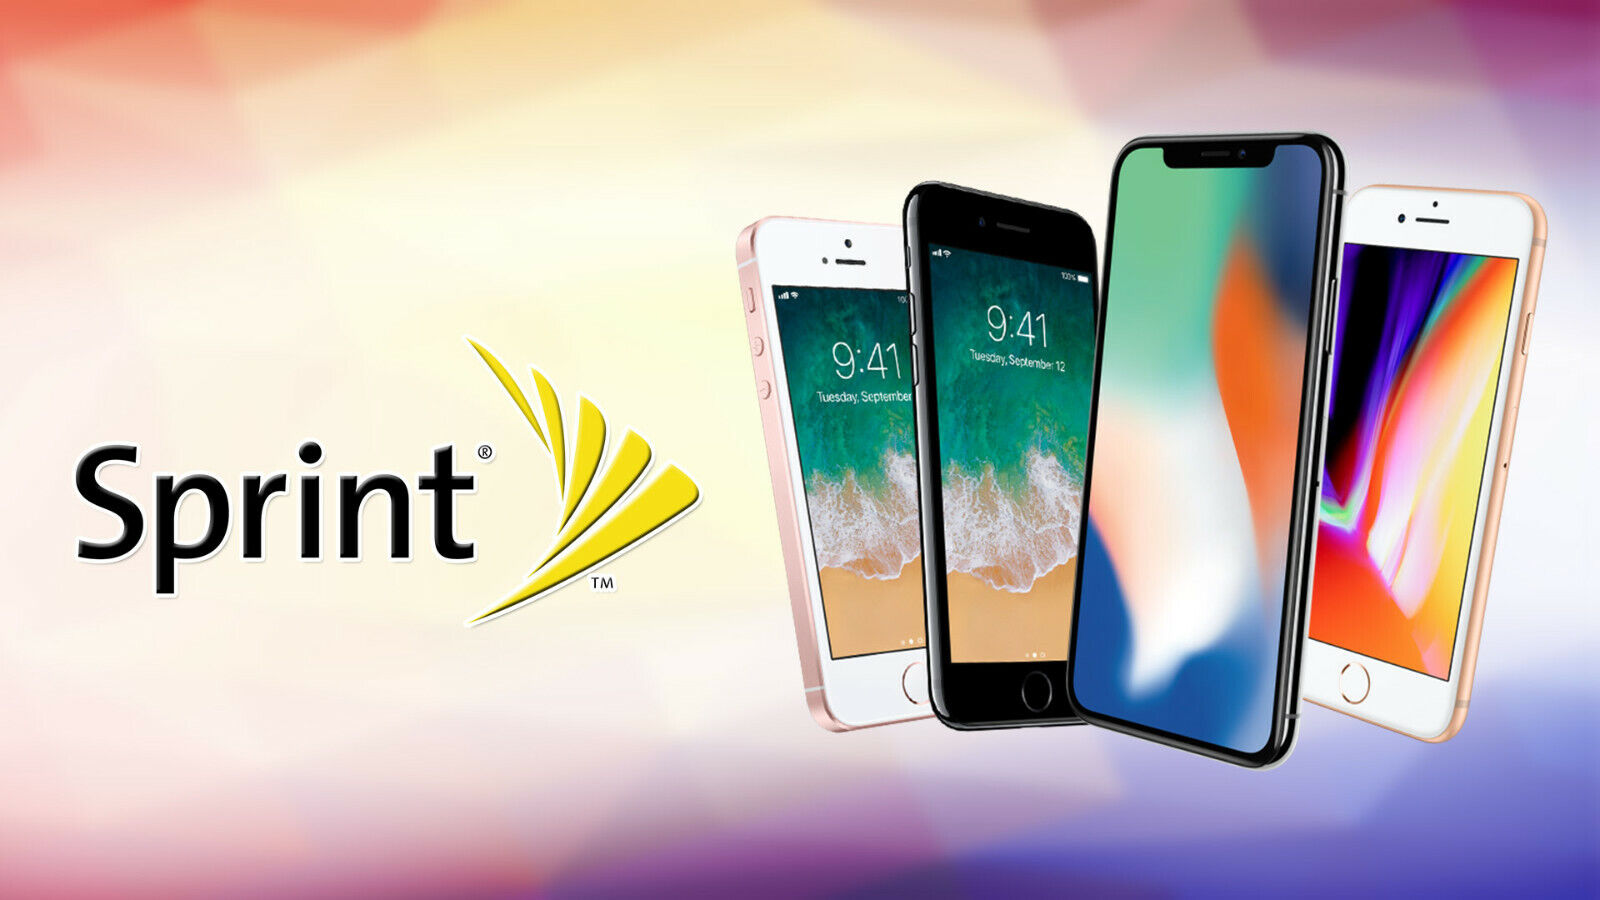 100 Trusted Iphone Sprint Factory Unlock Code Service Guide - $5.00